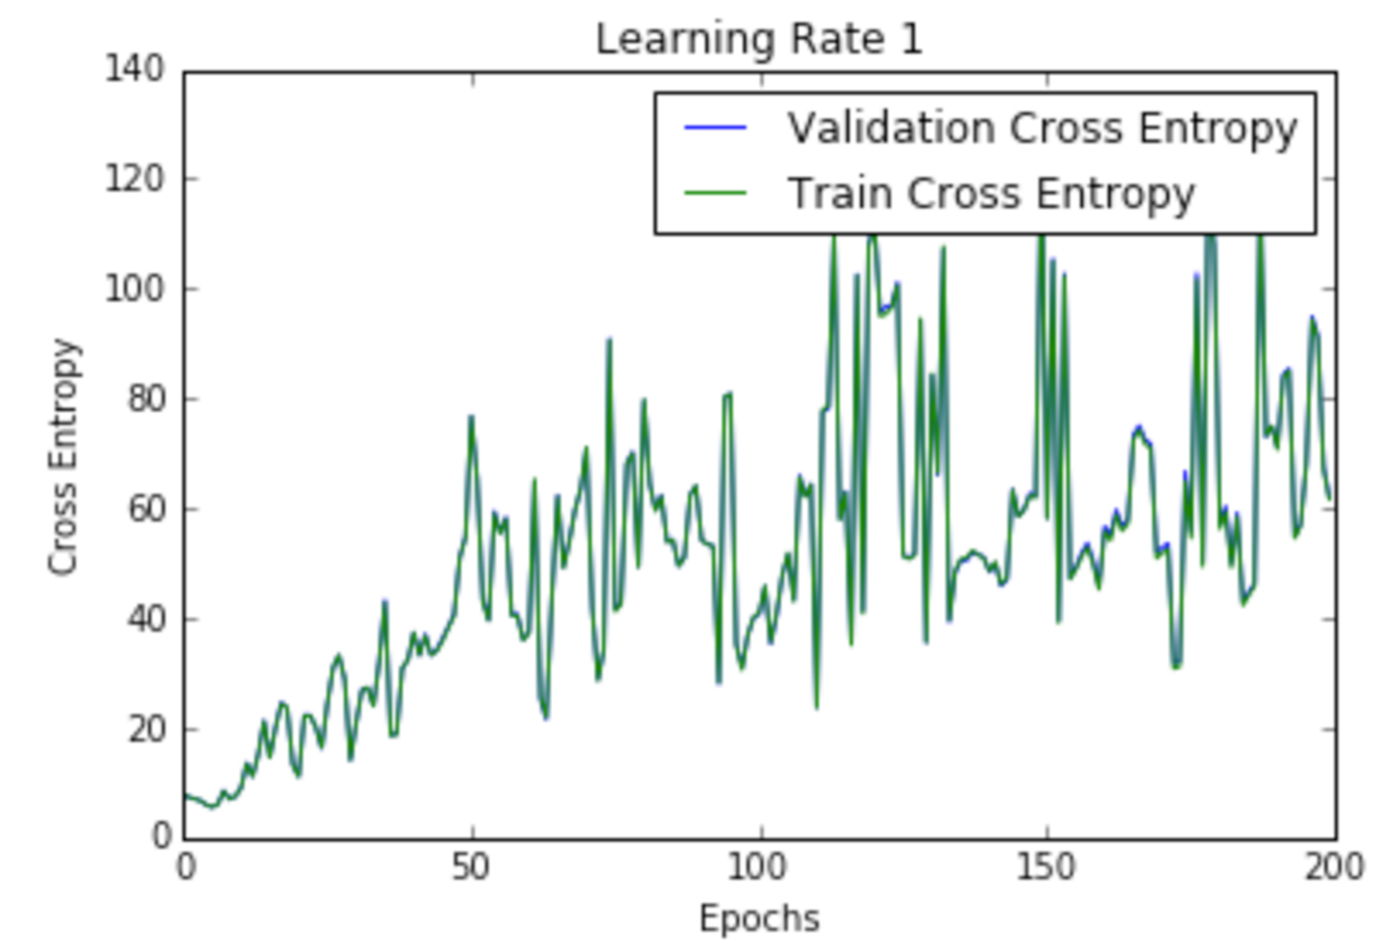 Cross entropy loss per epoch curve at Learning Rate 1